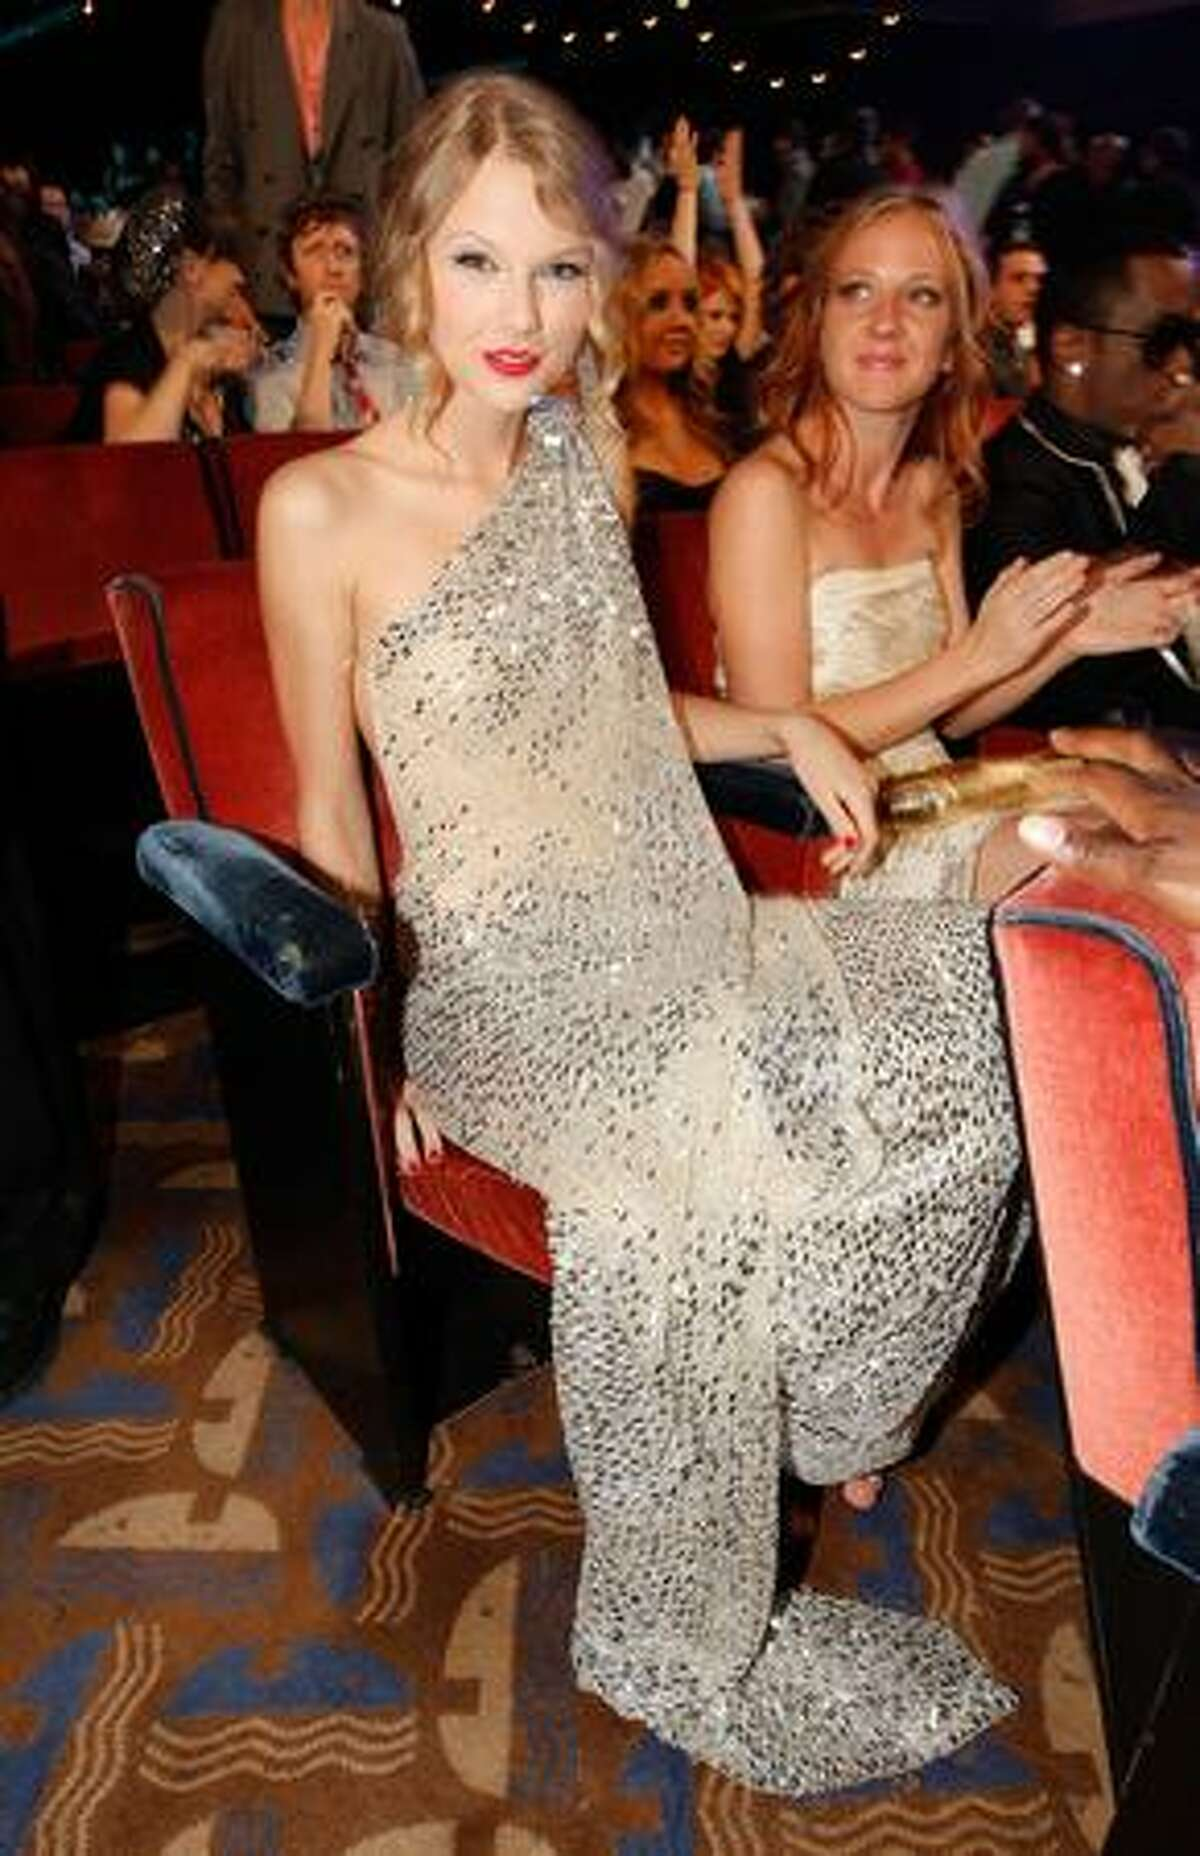 Taylor Swift sits in the audience.